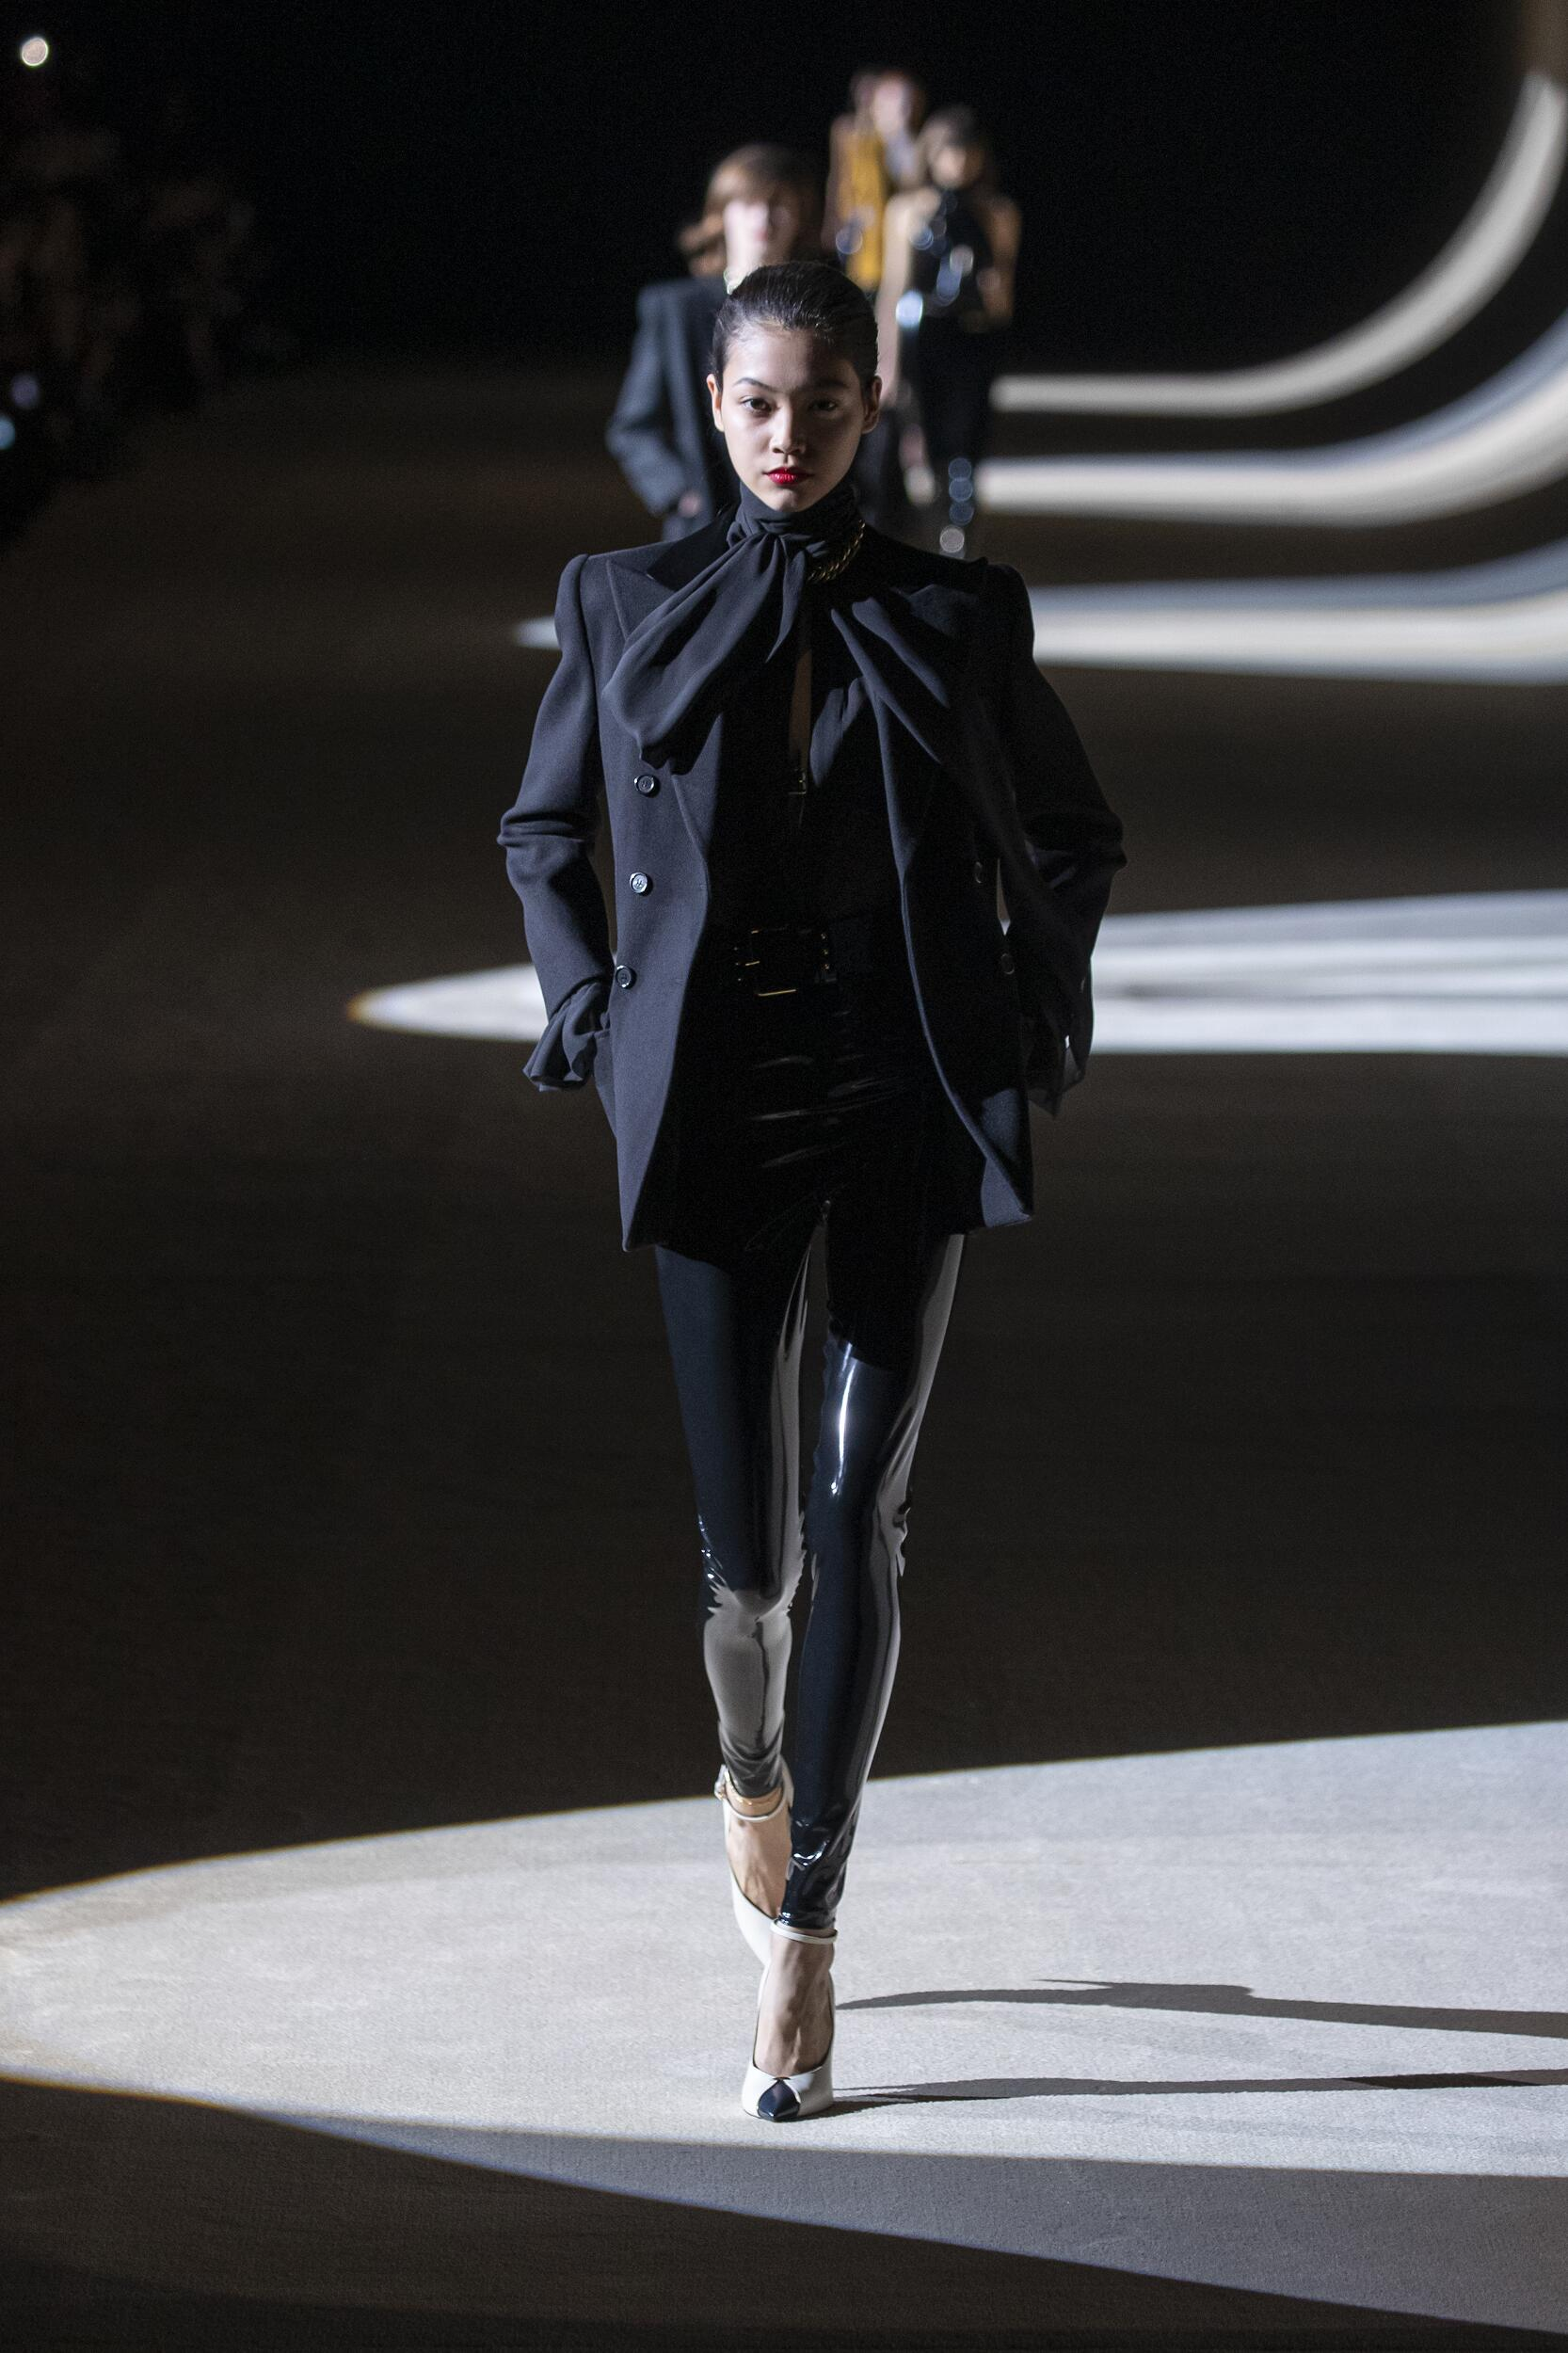 FW 2020-21 Saint Laurent Fashion Show